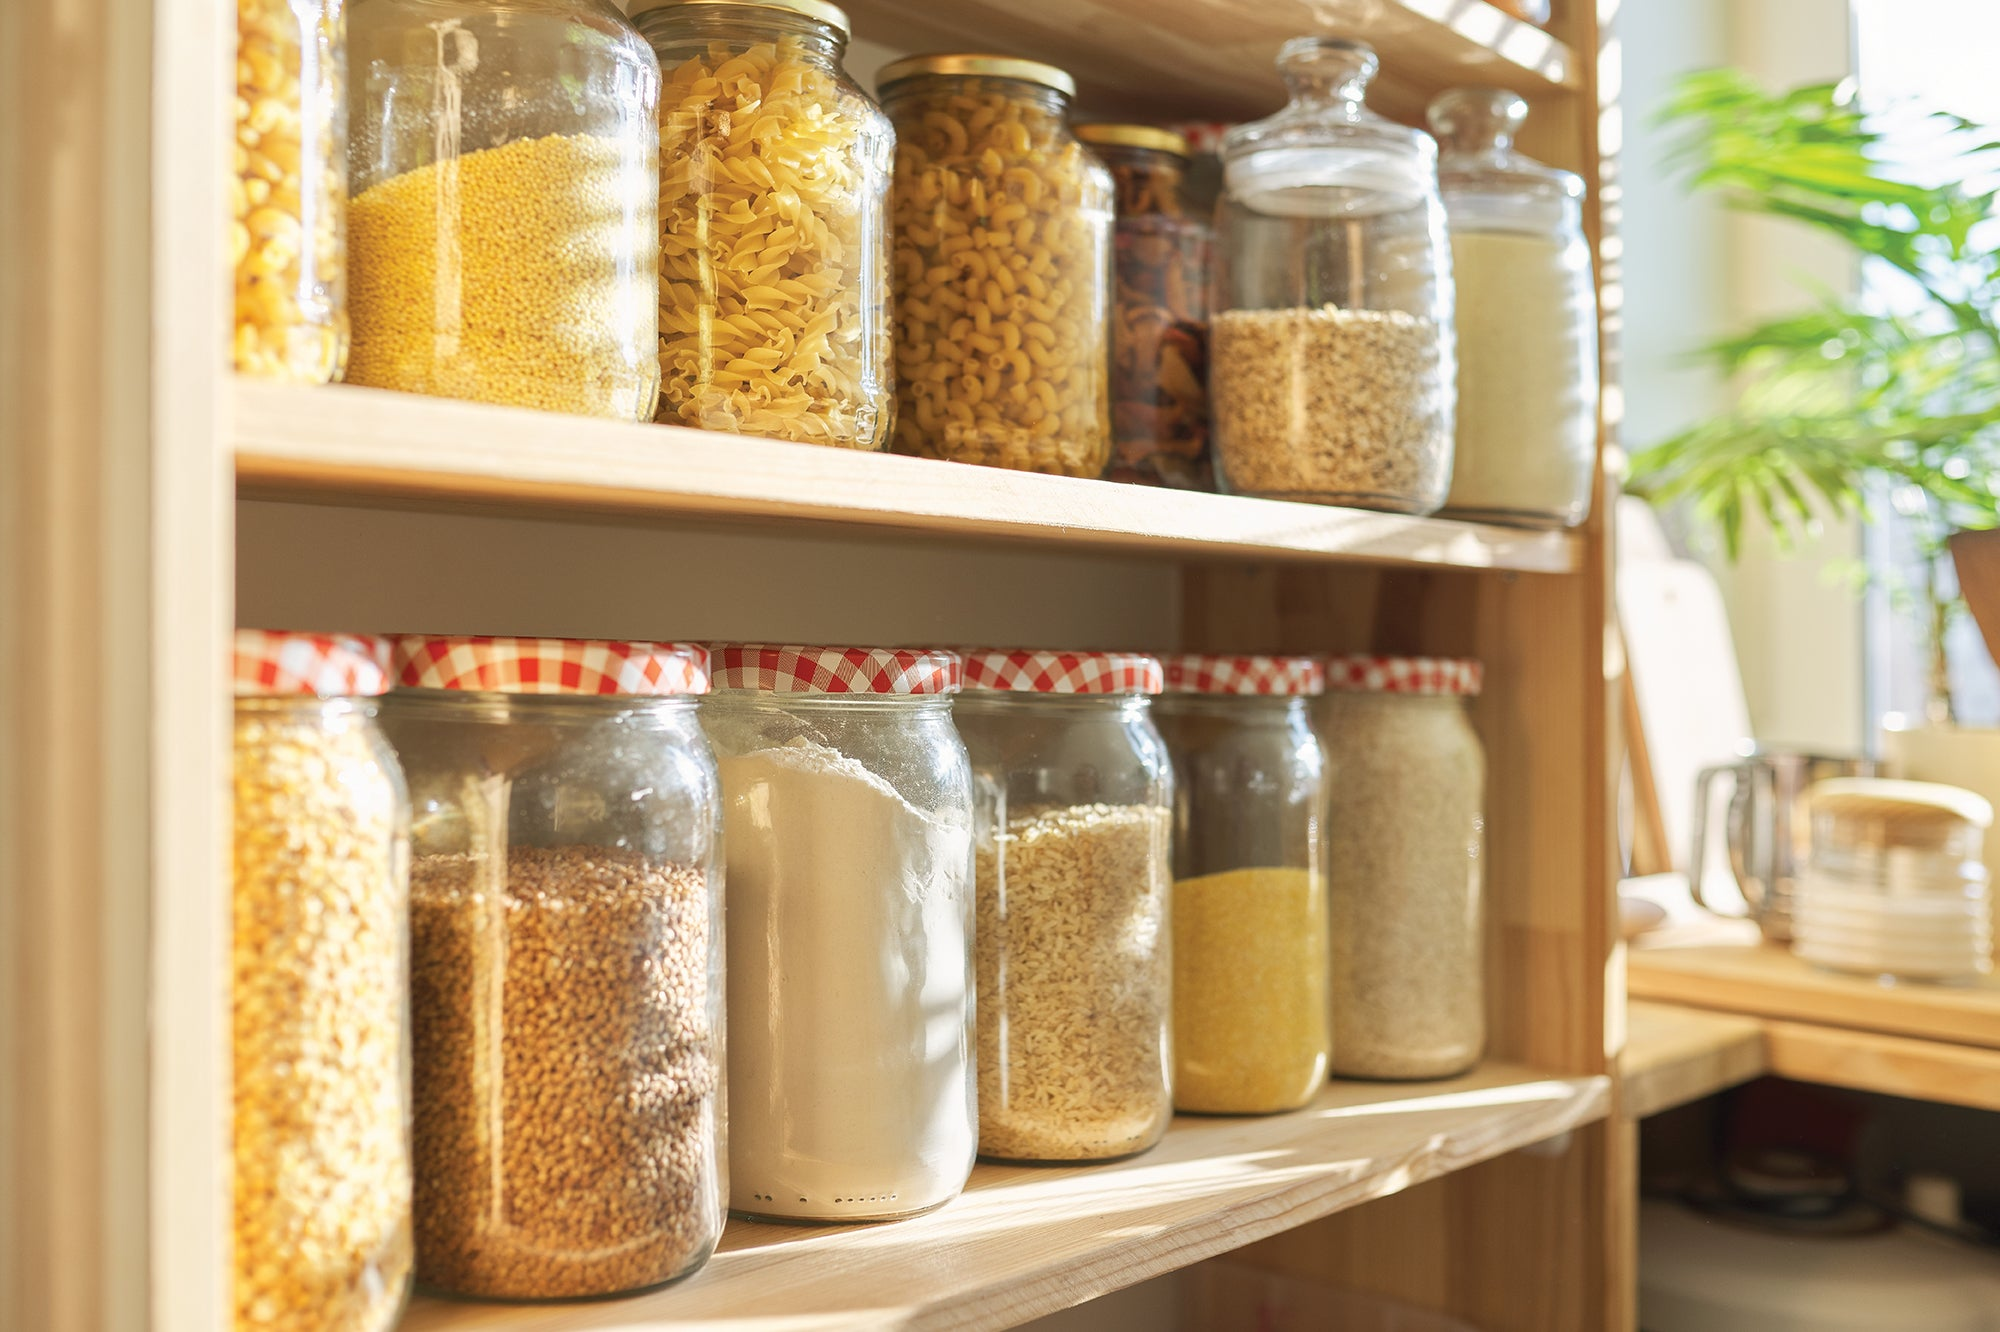 5 easy ways to make over your pantry